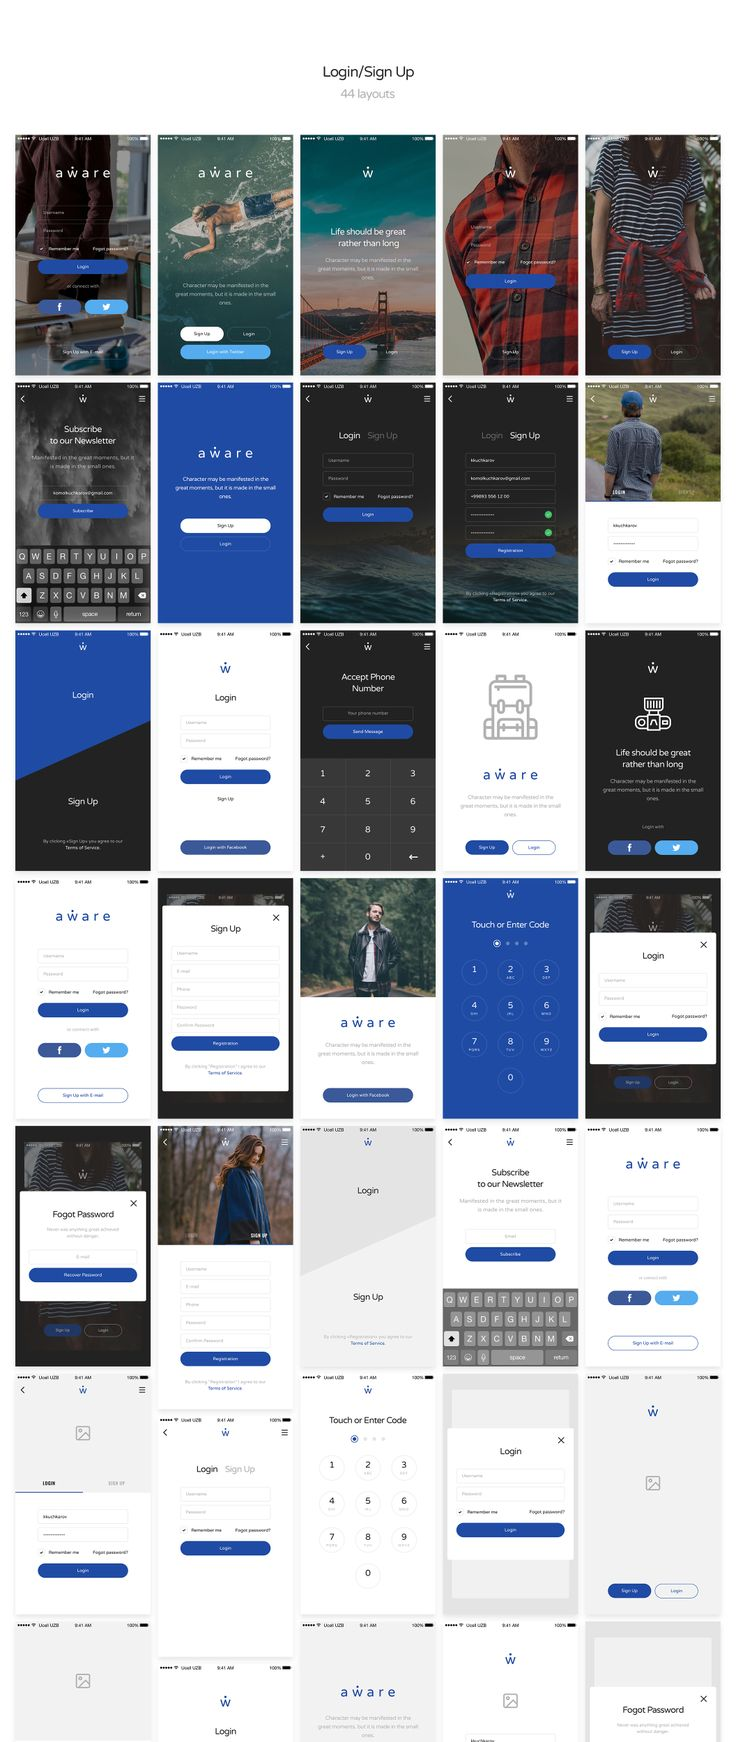 This awesome UI/UX Kit features a huge mobile UI Kit in both light